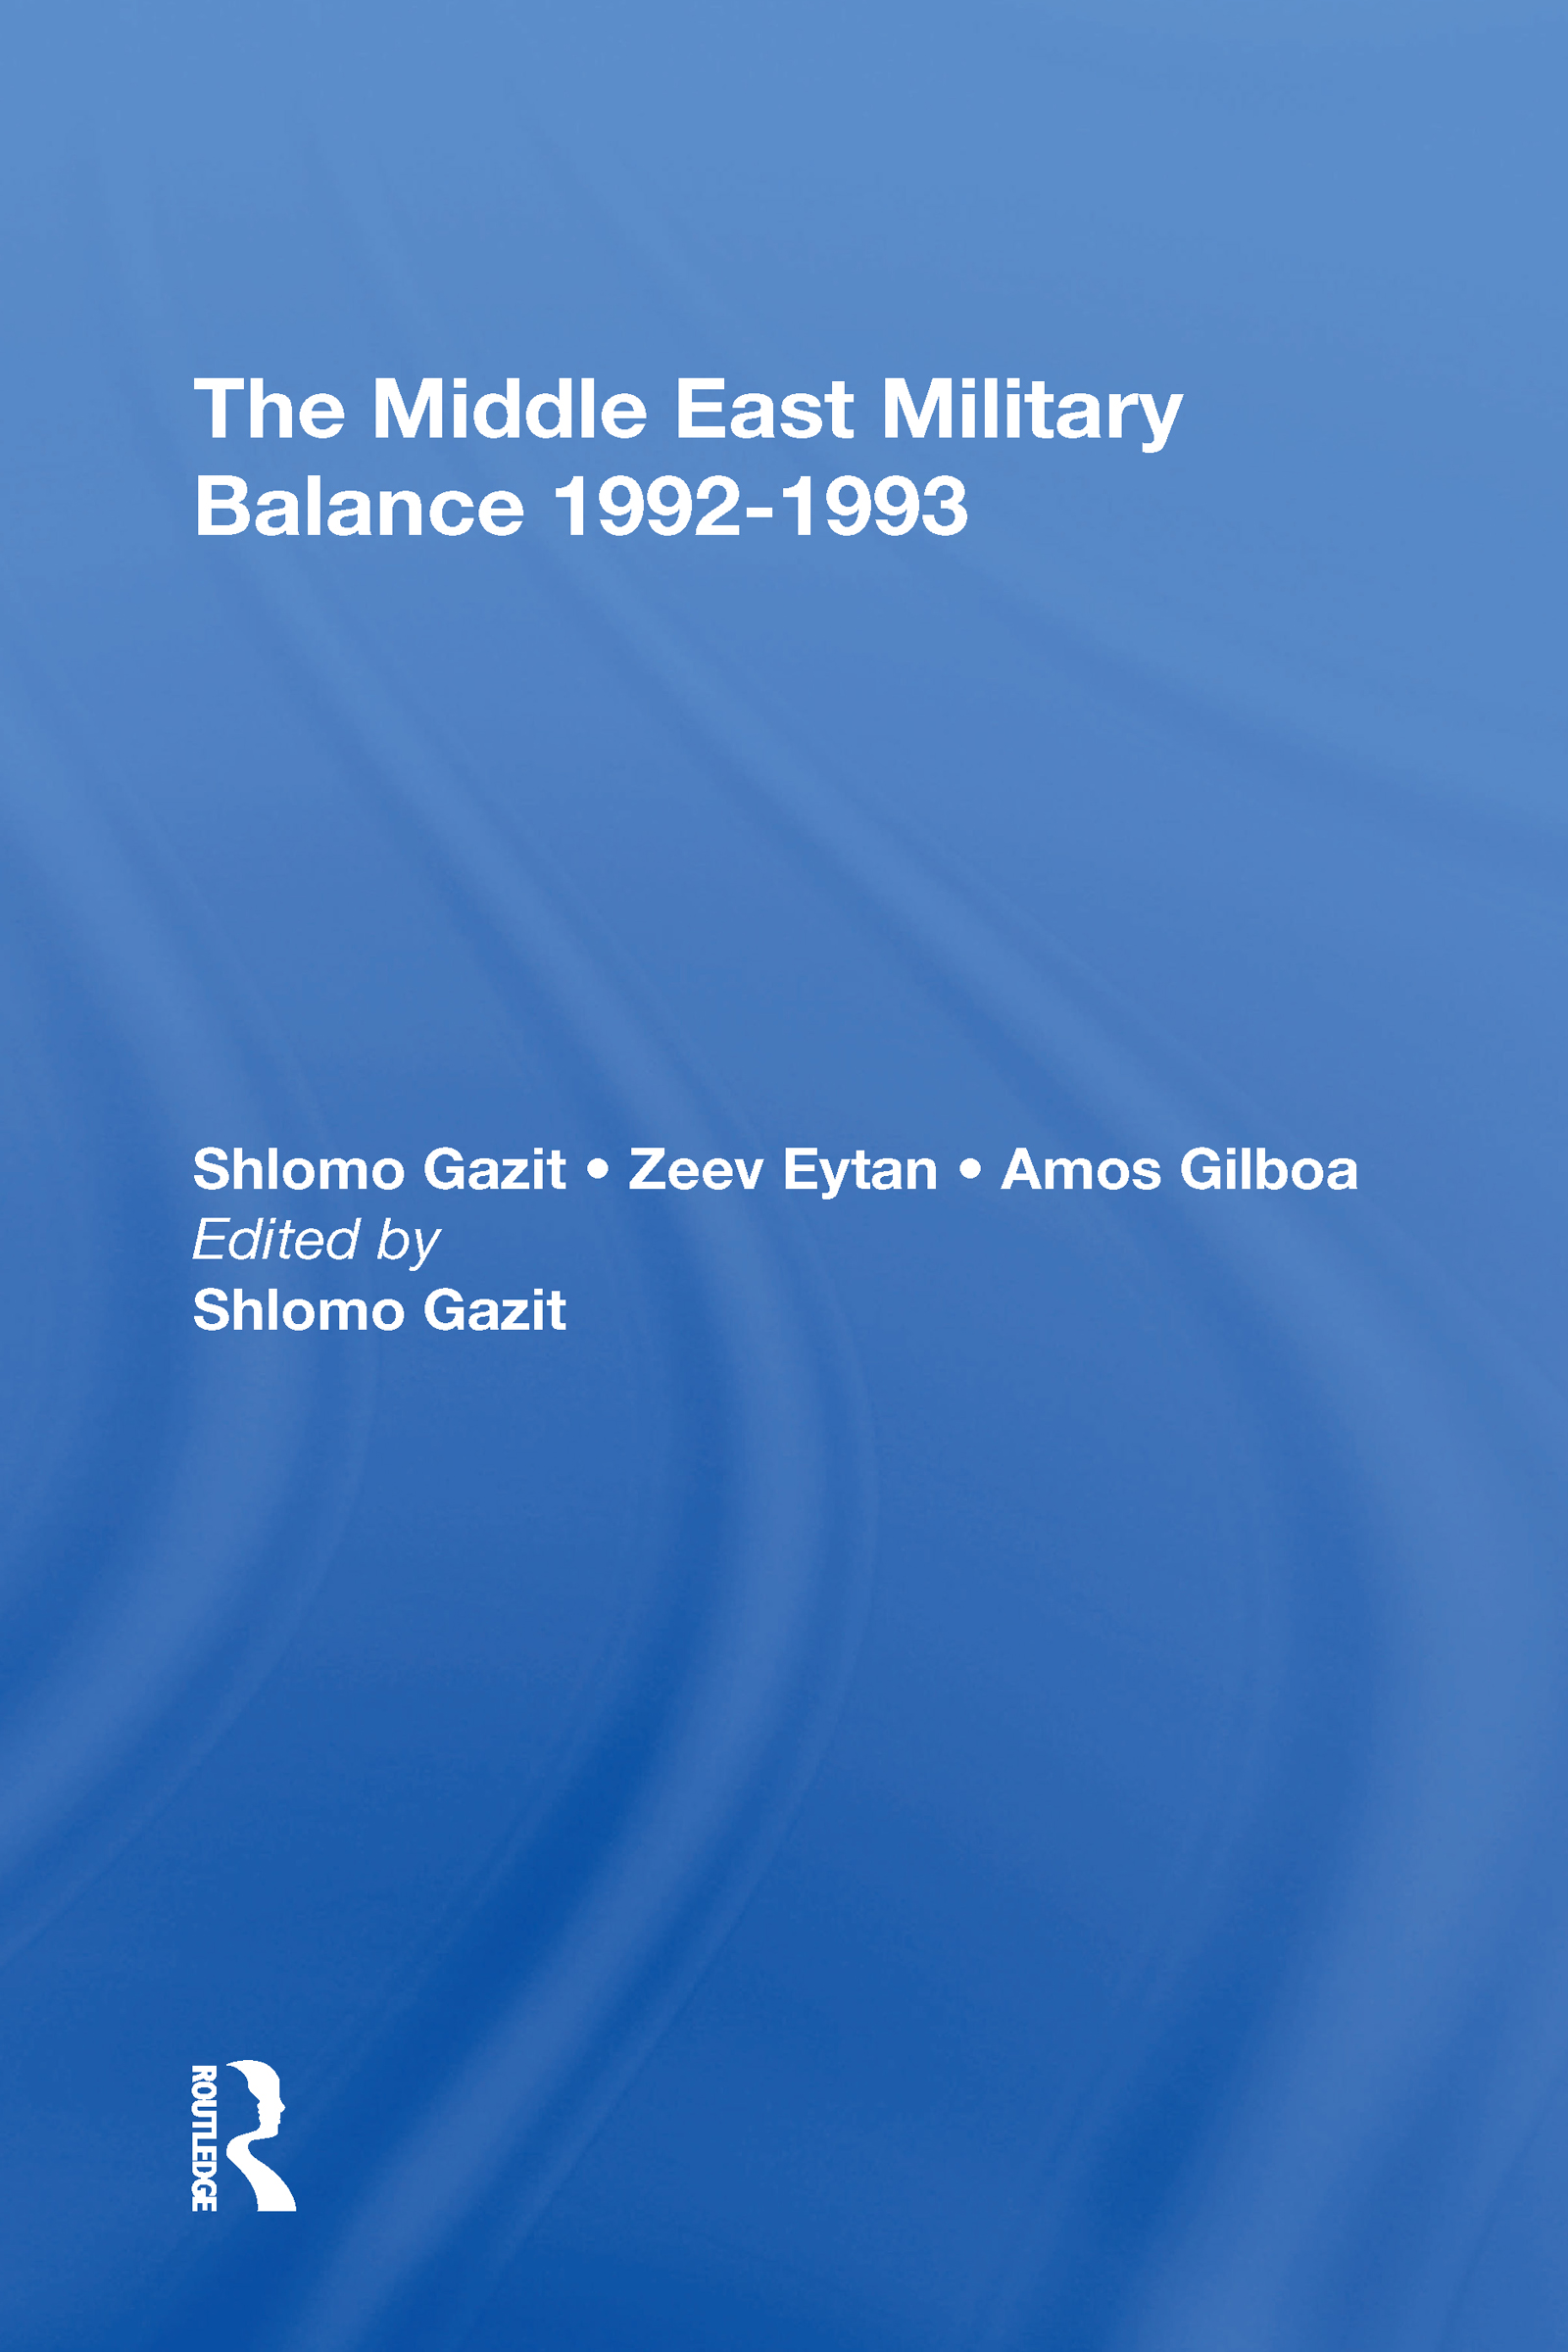 The Middle East Military Balance 1992-1993